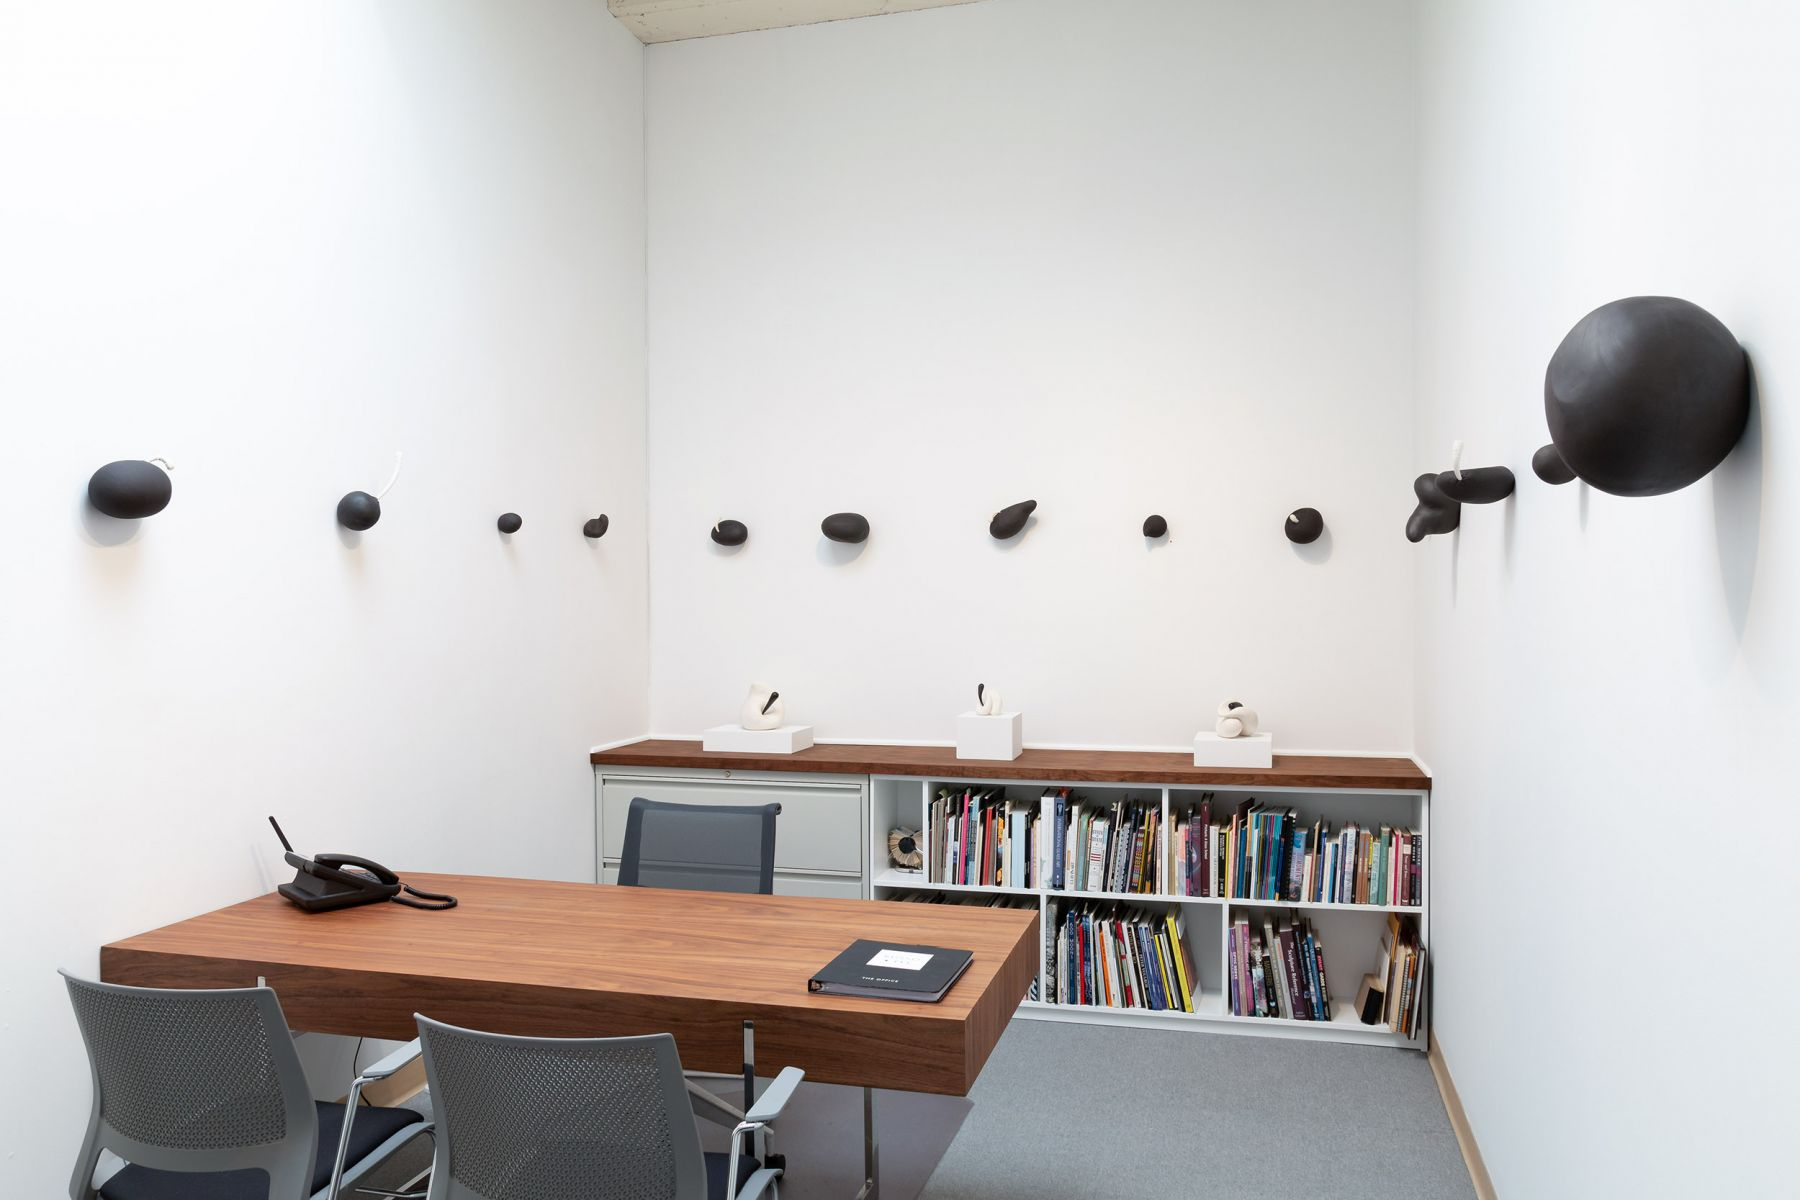 """Maya Vivas - selections from """"i have no choice but to suck the juice out, and who am i to blame"""" - July/August 2019 - Russo Lee Gallery - Installation view 01"""